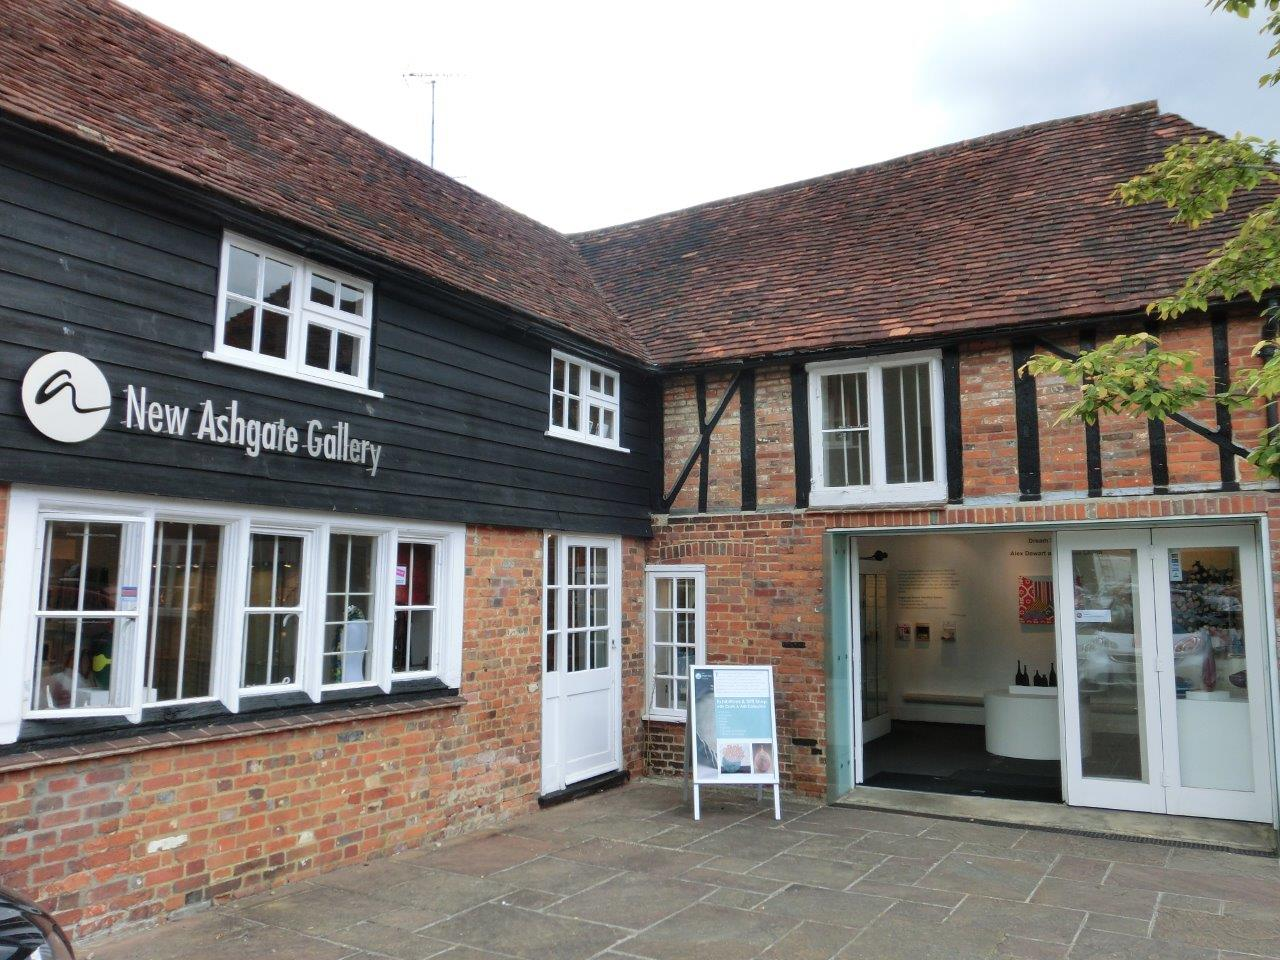 New Ashgate Gallery